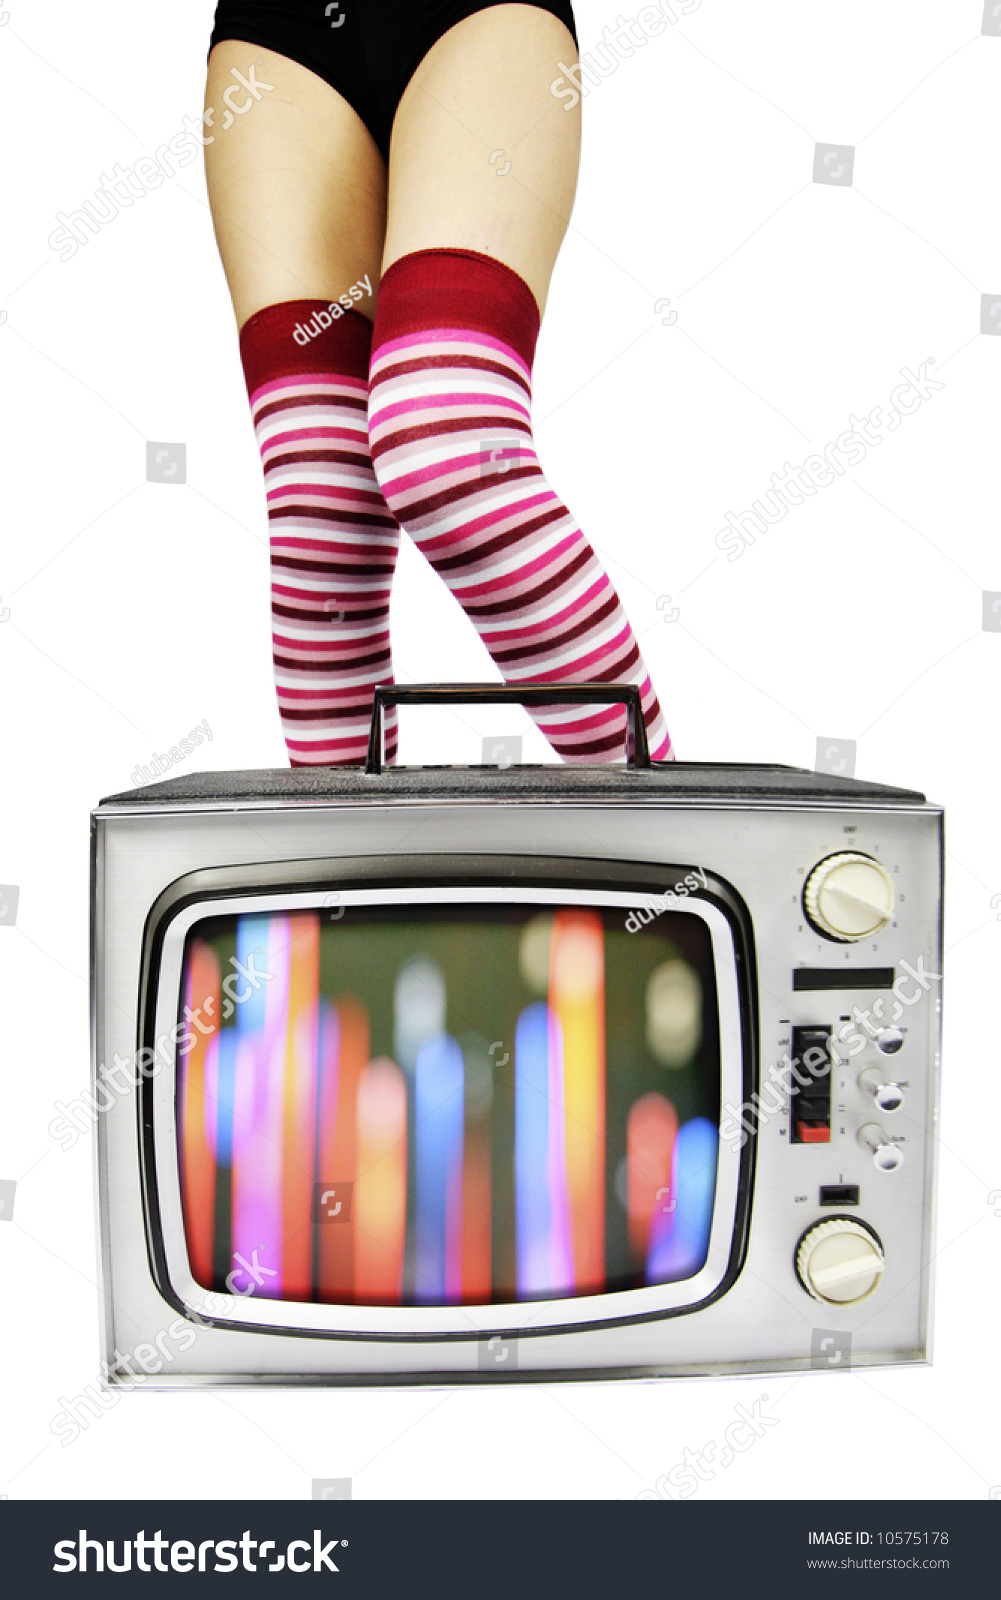 sexy legs with long socks behind retro tv